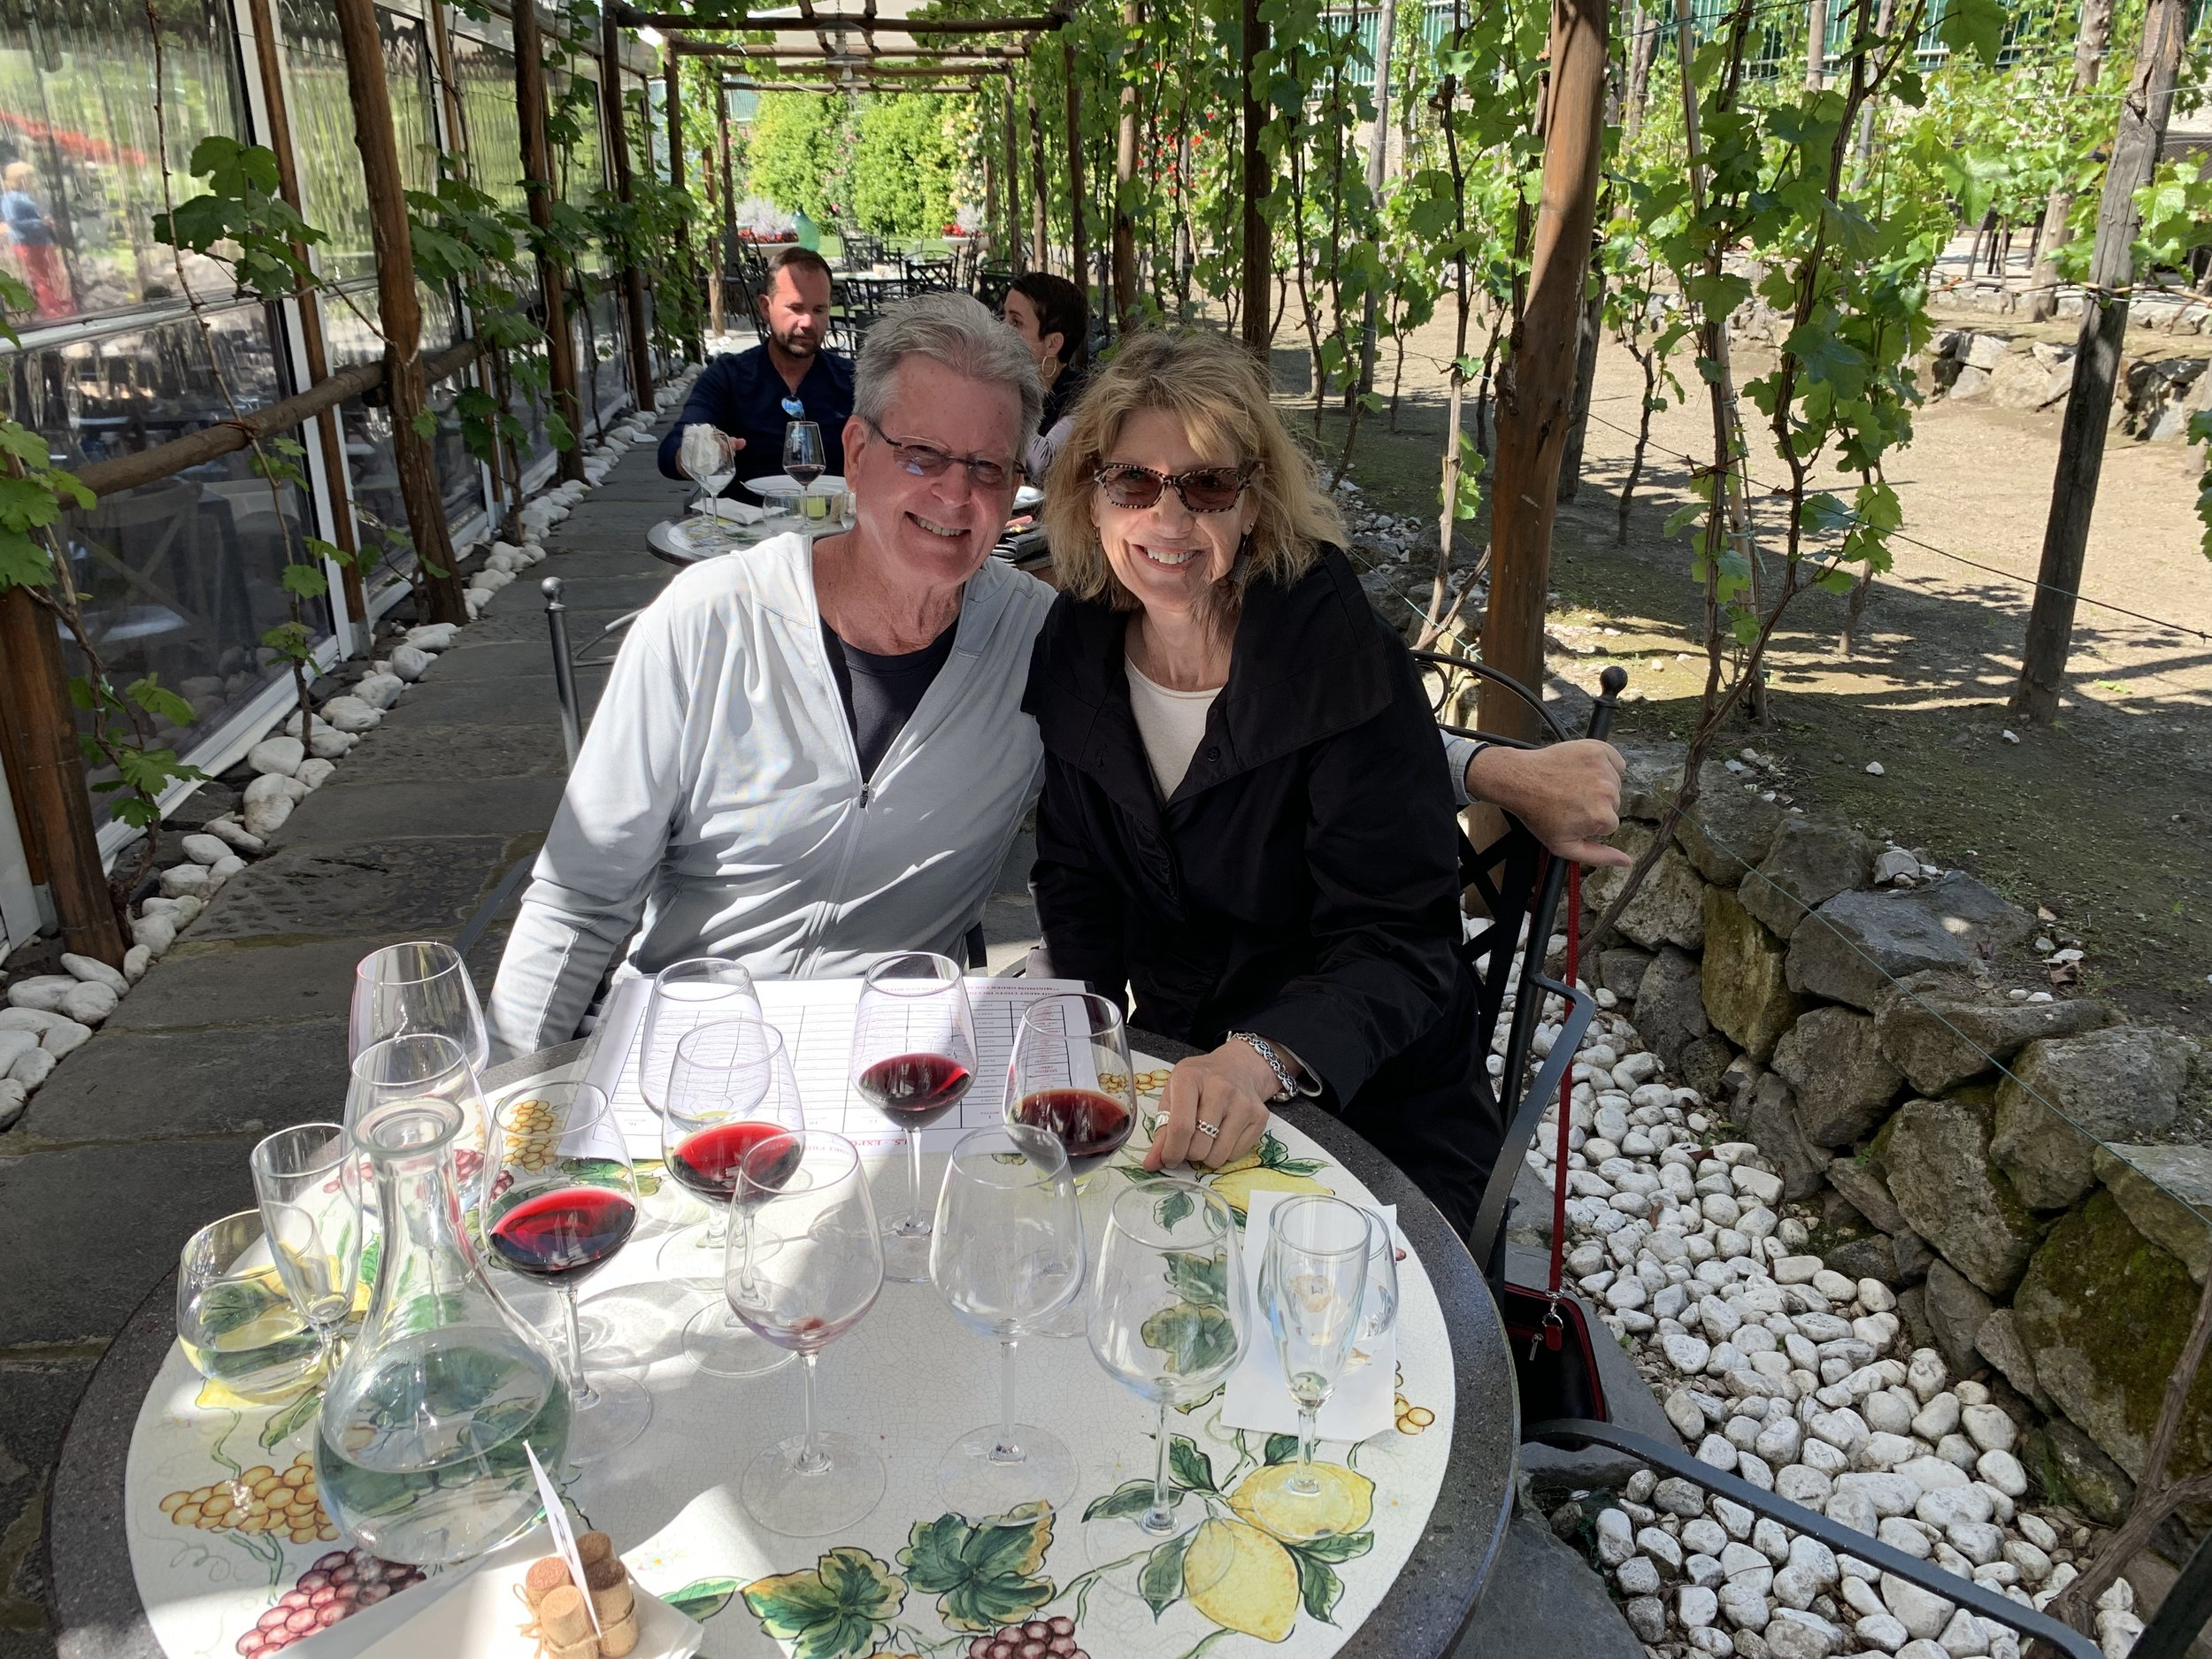 Lunch—and wine tasting—at the Bosco de Medici Winery in Pompeii.